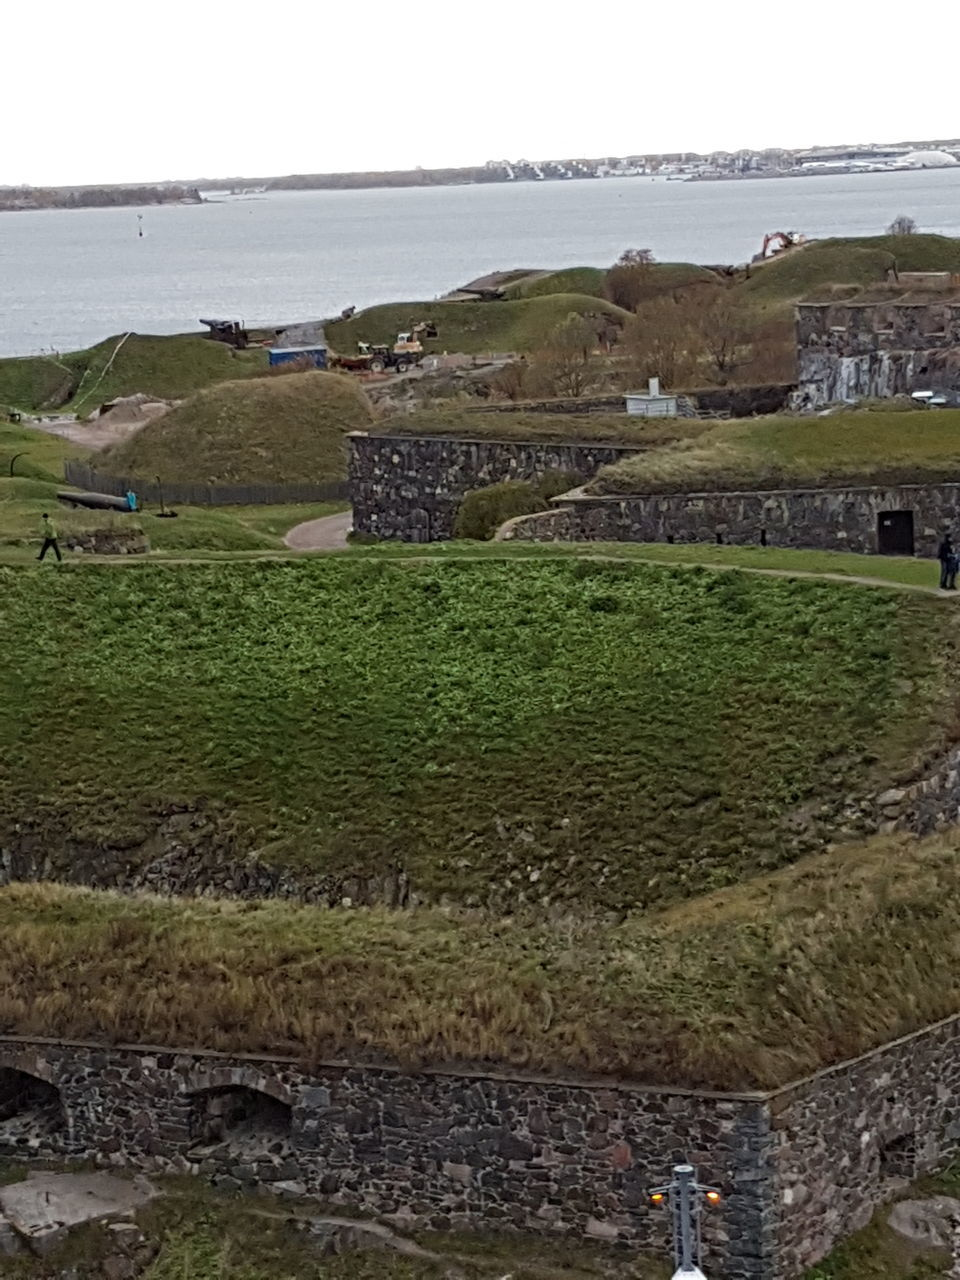 sea, water, history, nature, grass, horizon over water, day, ancient, outdoors, old ruin, no people, scenics, tranquil scene, green color, built structure, field, beauty in nature, travel destinations, tranquility, landscape, architecture, clear sky, sky, building exterior, ancient civilization